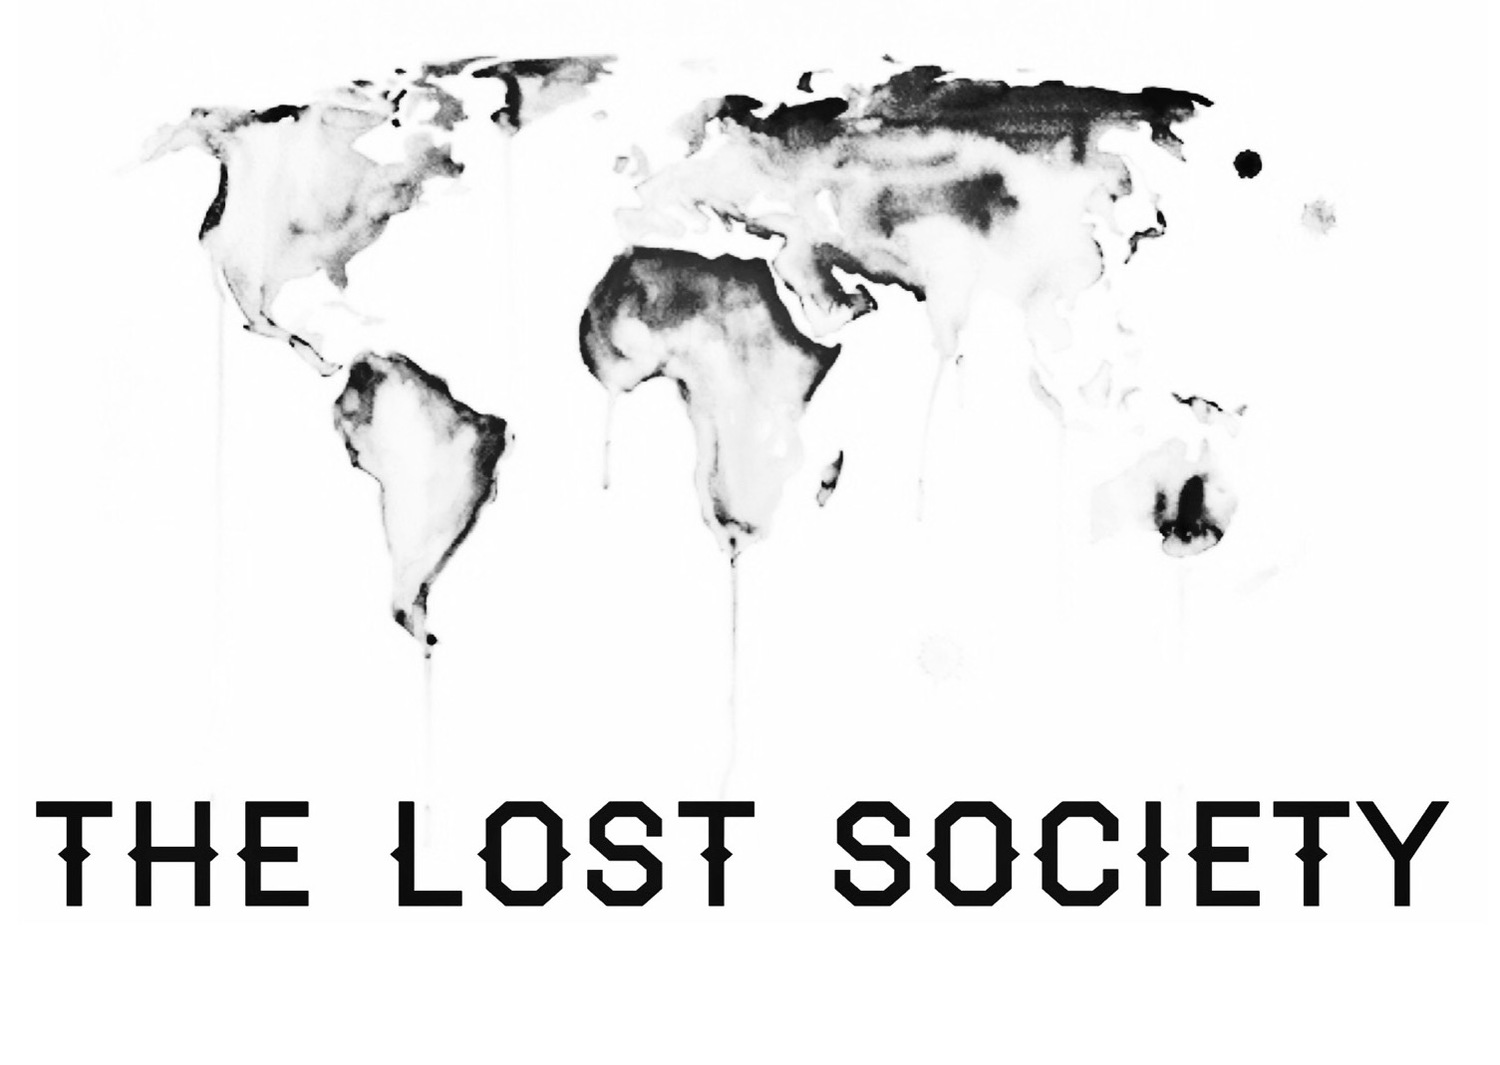 The Lost Society Designs